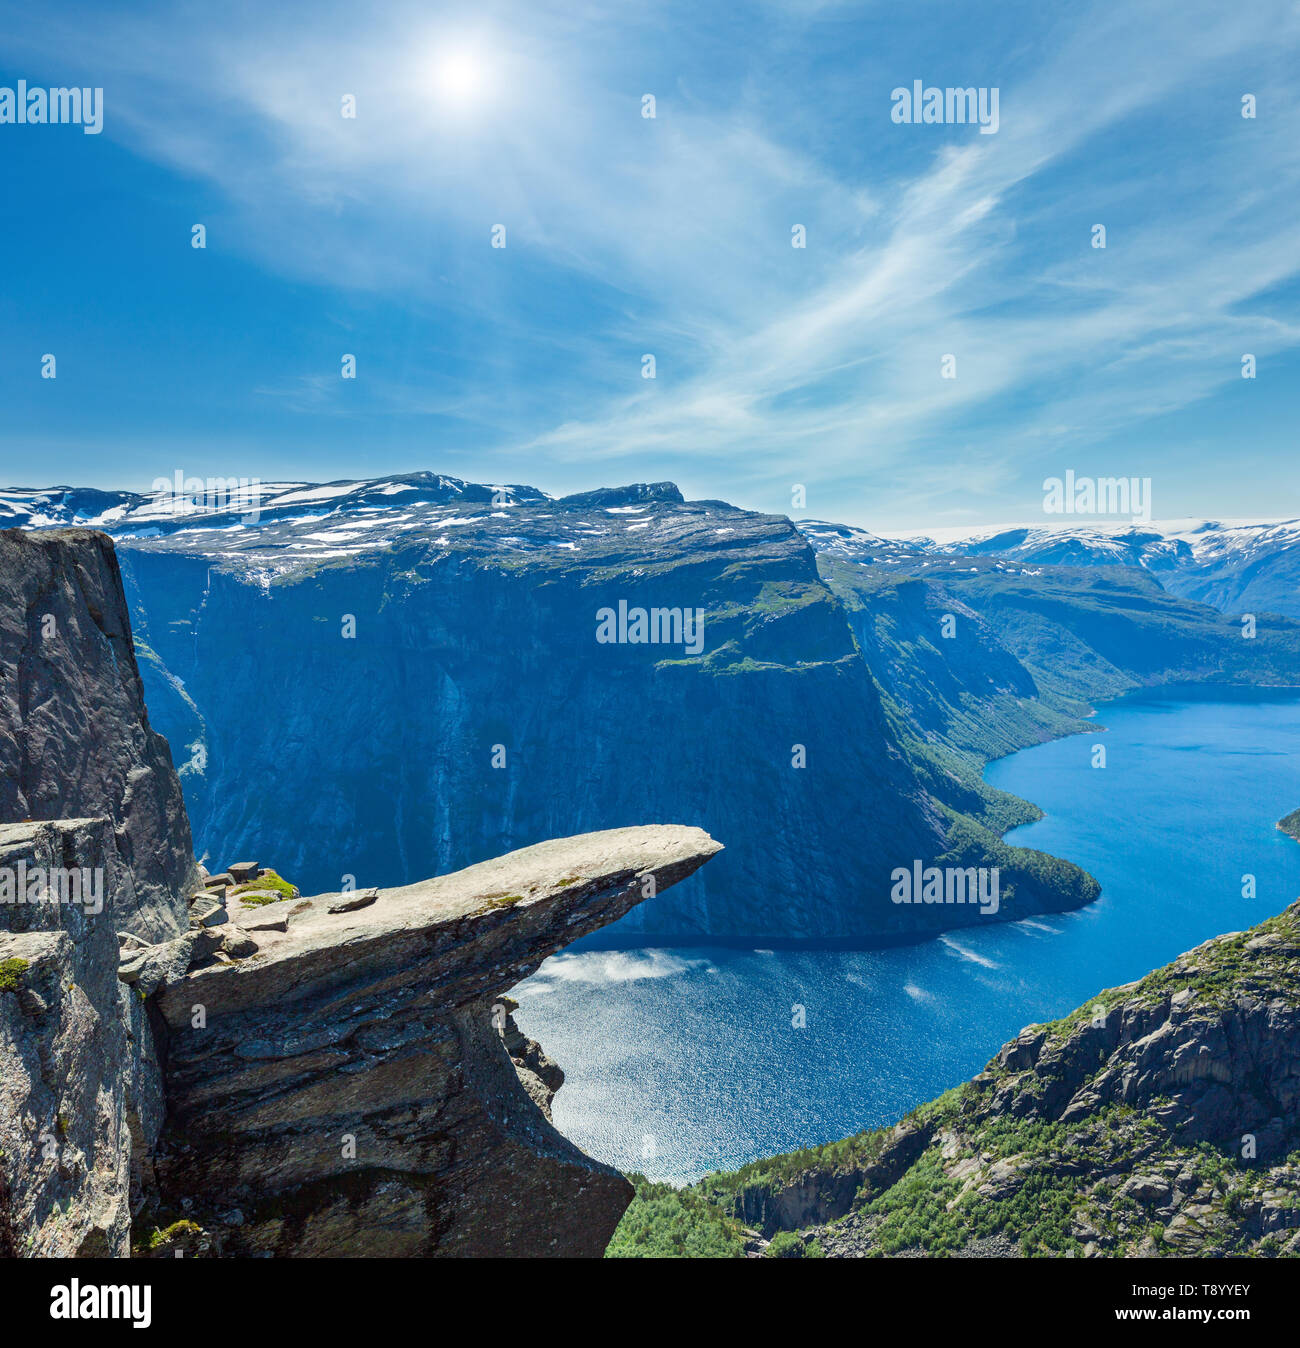 The summer sunshiny view of Trolltunga (famous The Troll's tongue Norvegian destination) and Ringedalsvatnet lake in Odda, Roldal, Norway. - Stock Image